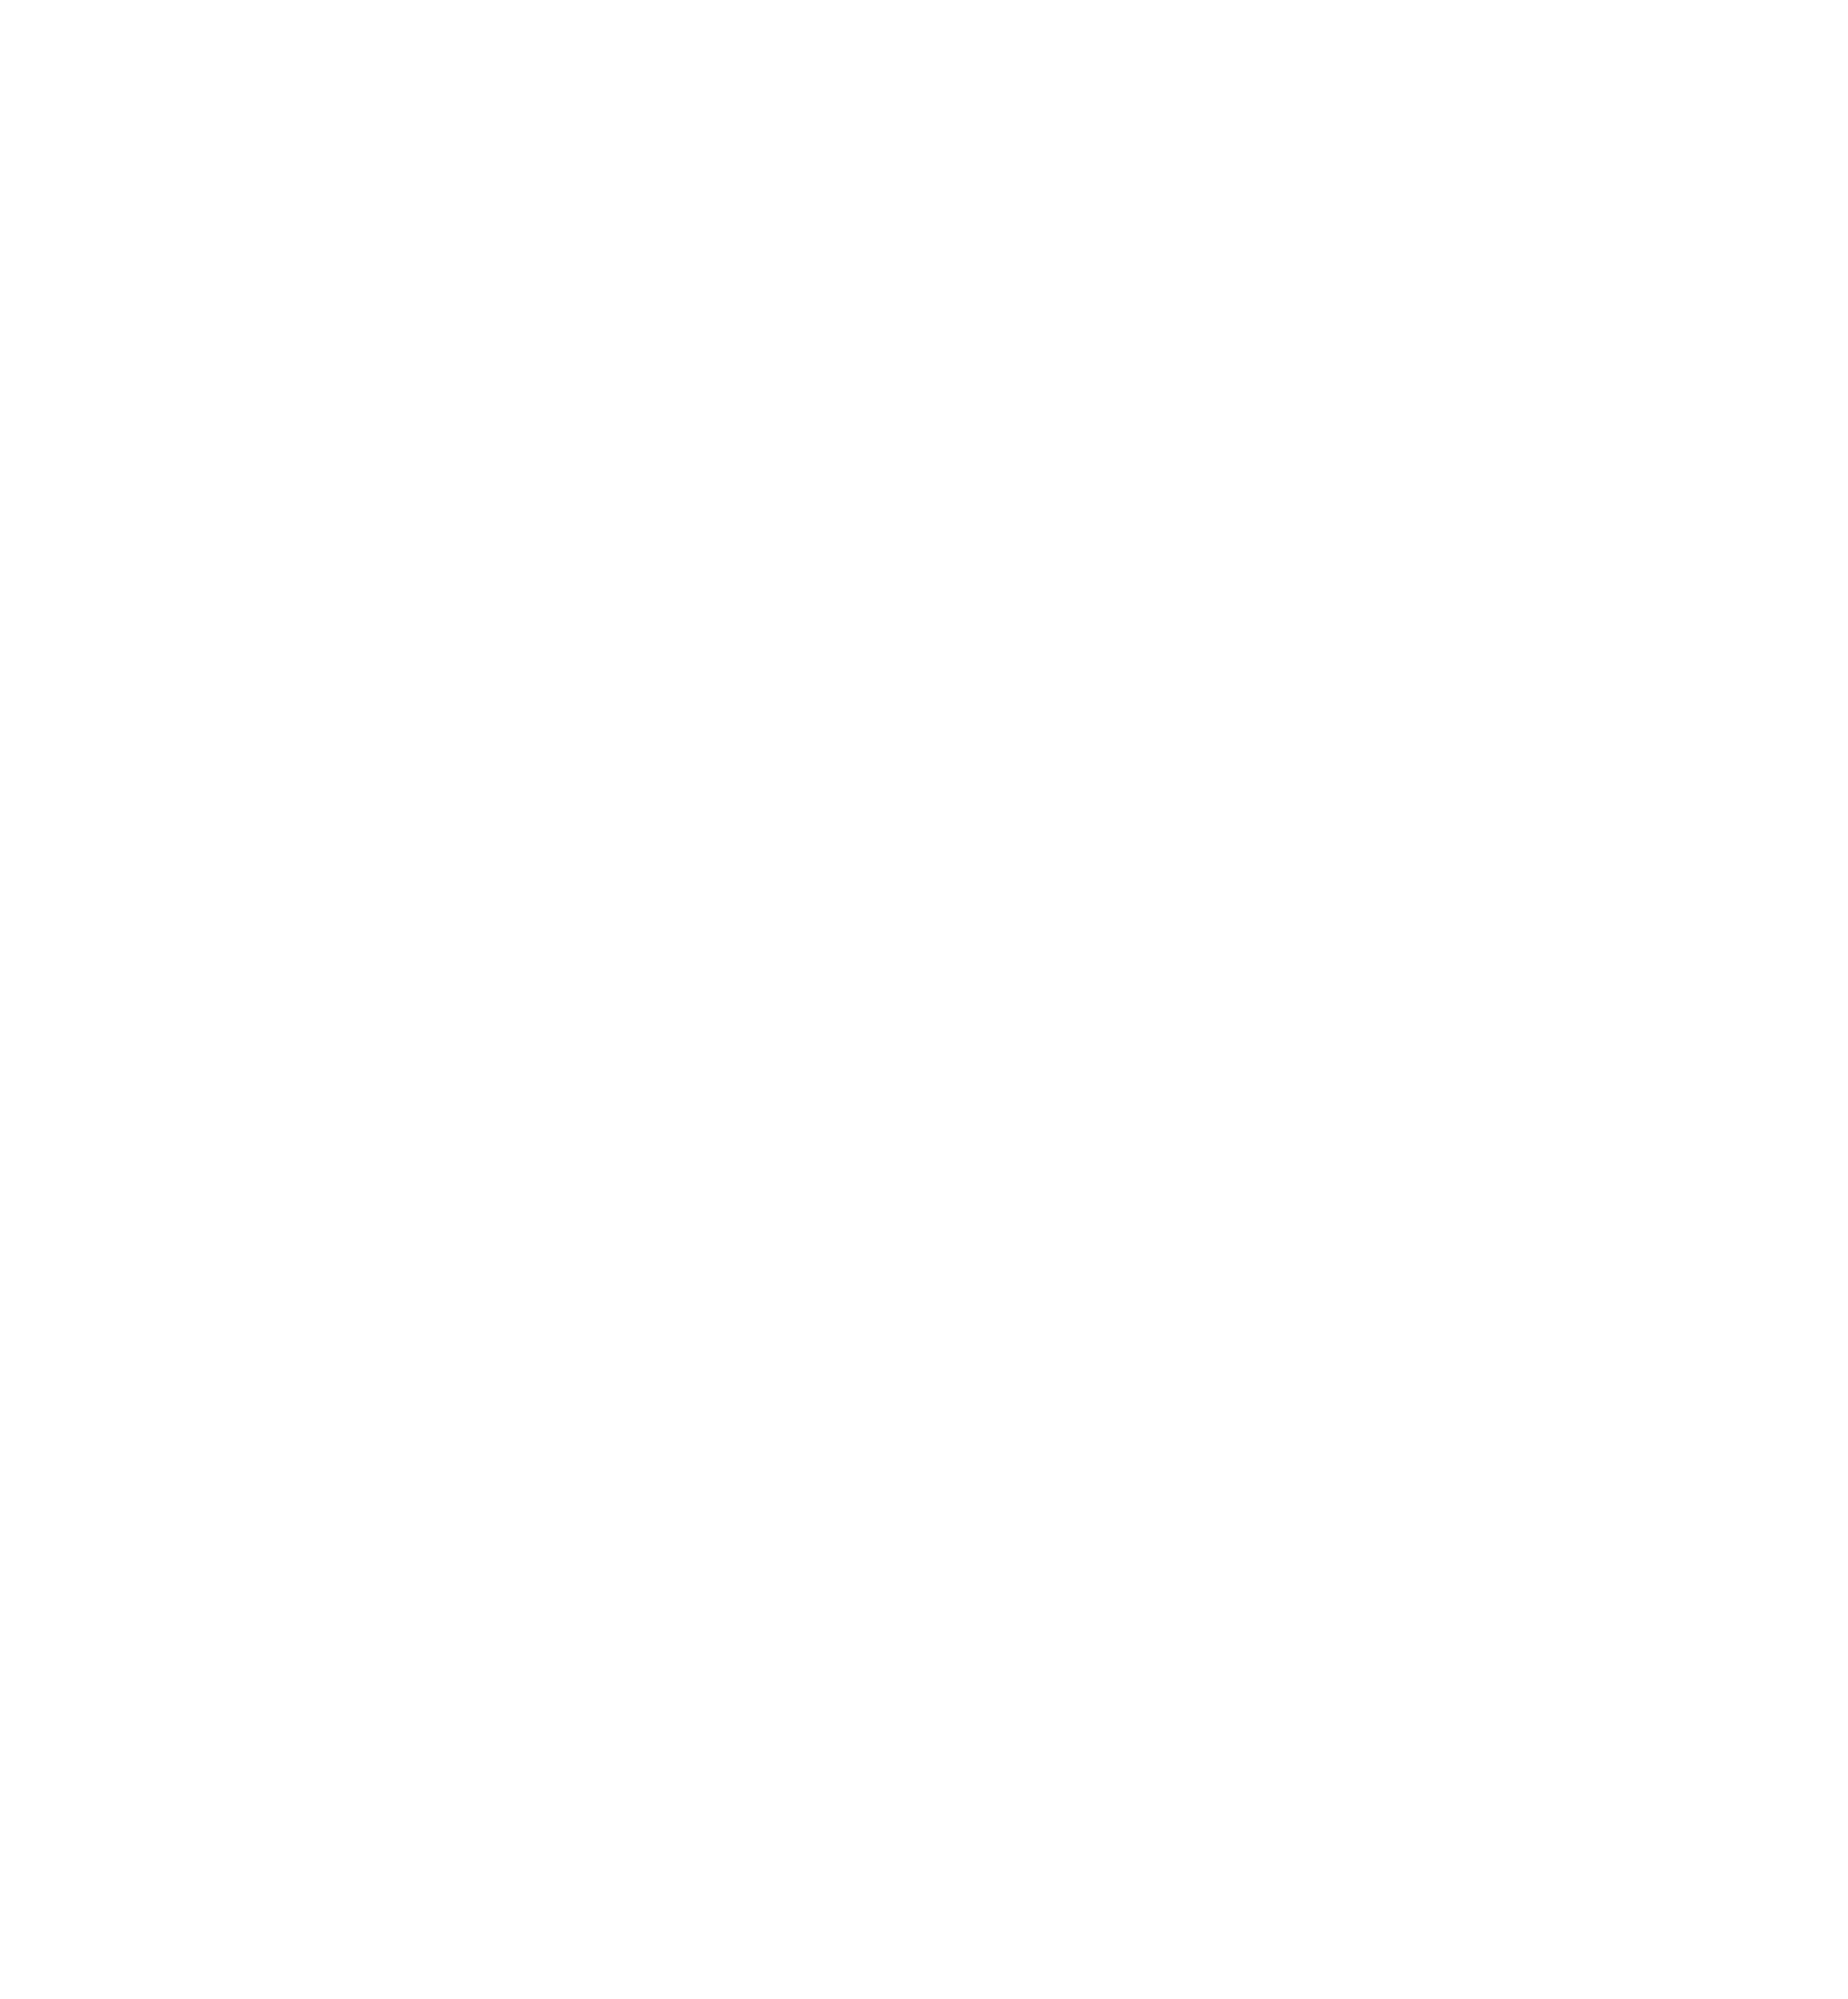 Top Dentist Award 2018 and 2019